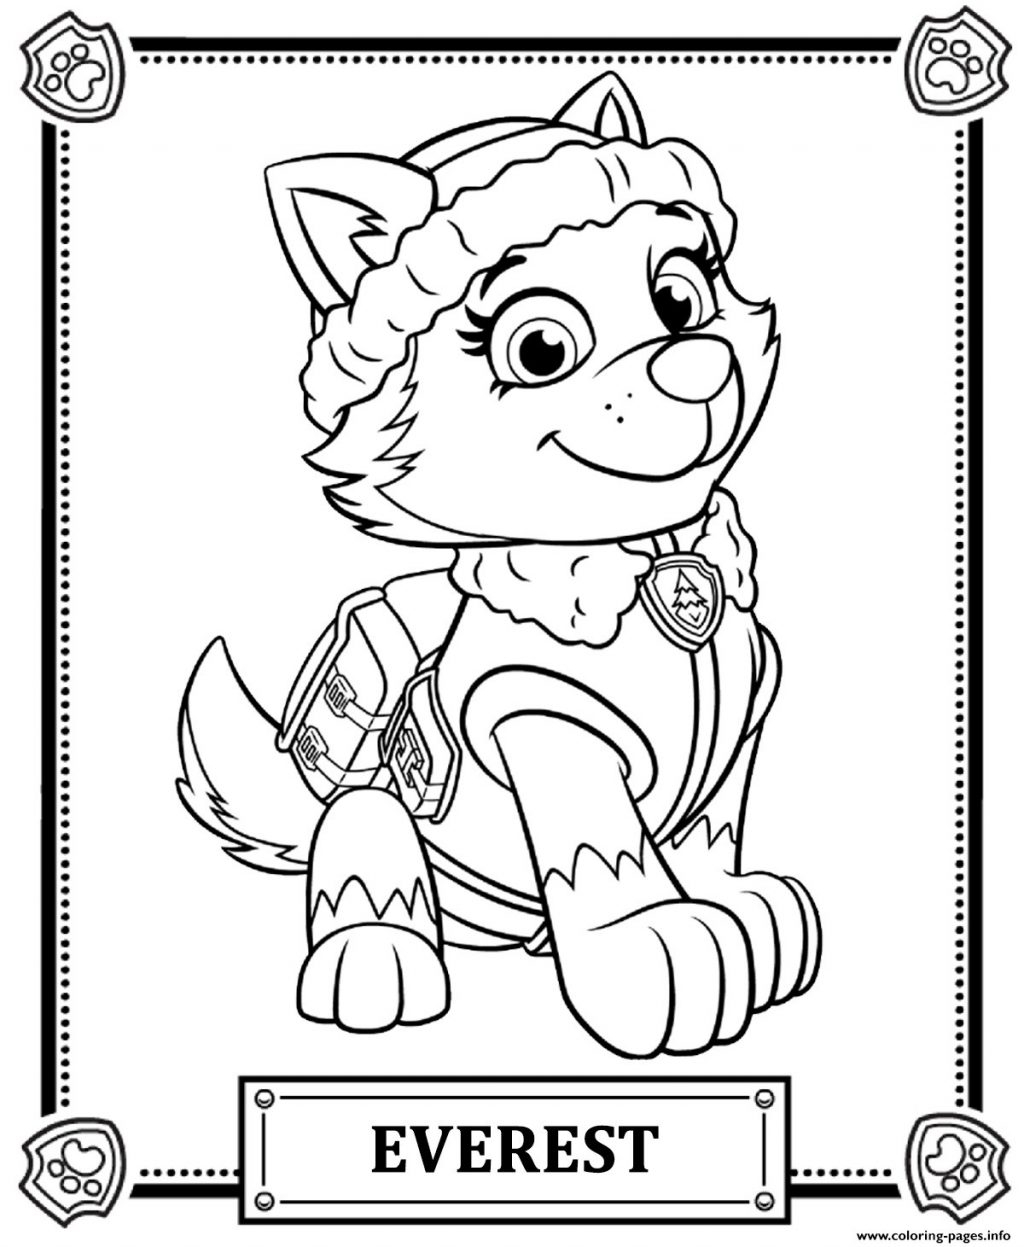 image about Printable Paw Patrol Coloring Pages titled Marshall Paw Patrol Coloring Web site Coloring Internet pages Paw Patrol